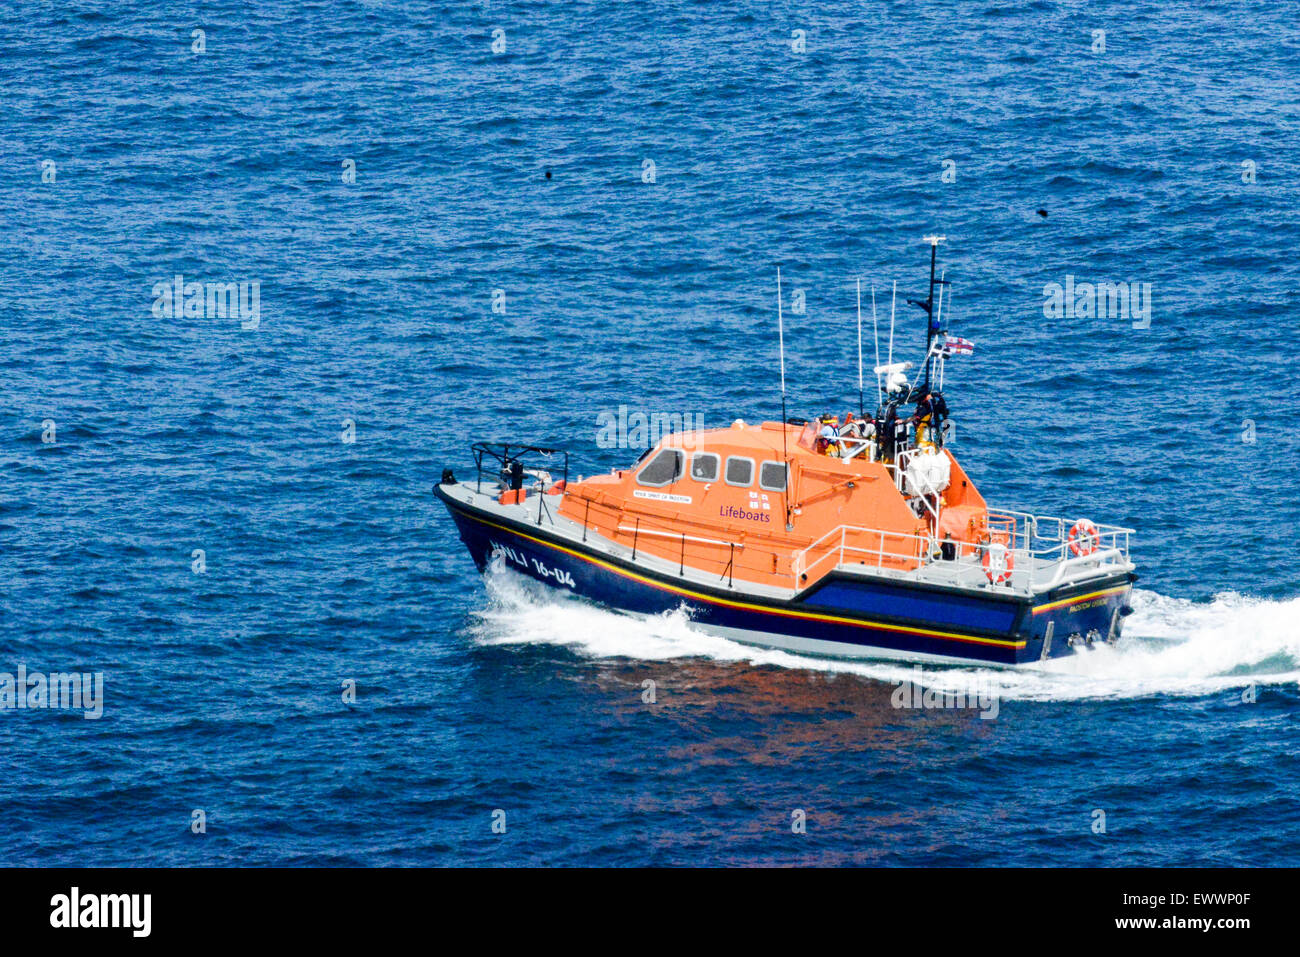 Padstow Lifeboat carrying out search and rescue operation around Trevose head and the Camel Estuary. Cornwall UK Stock Photo